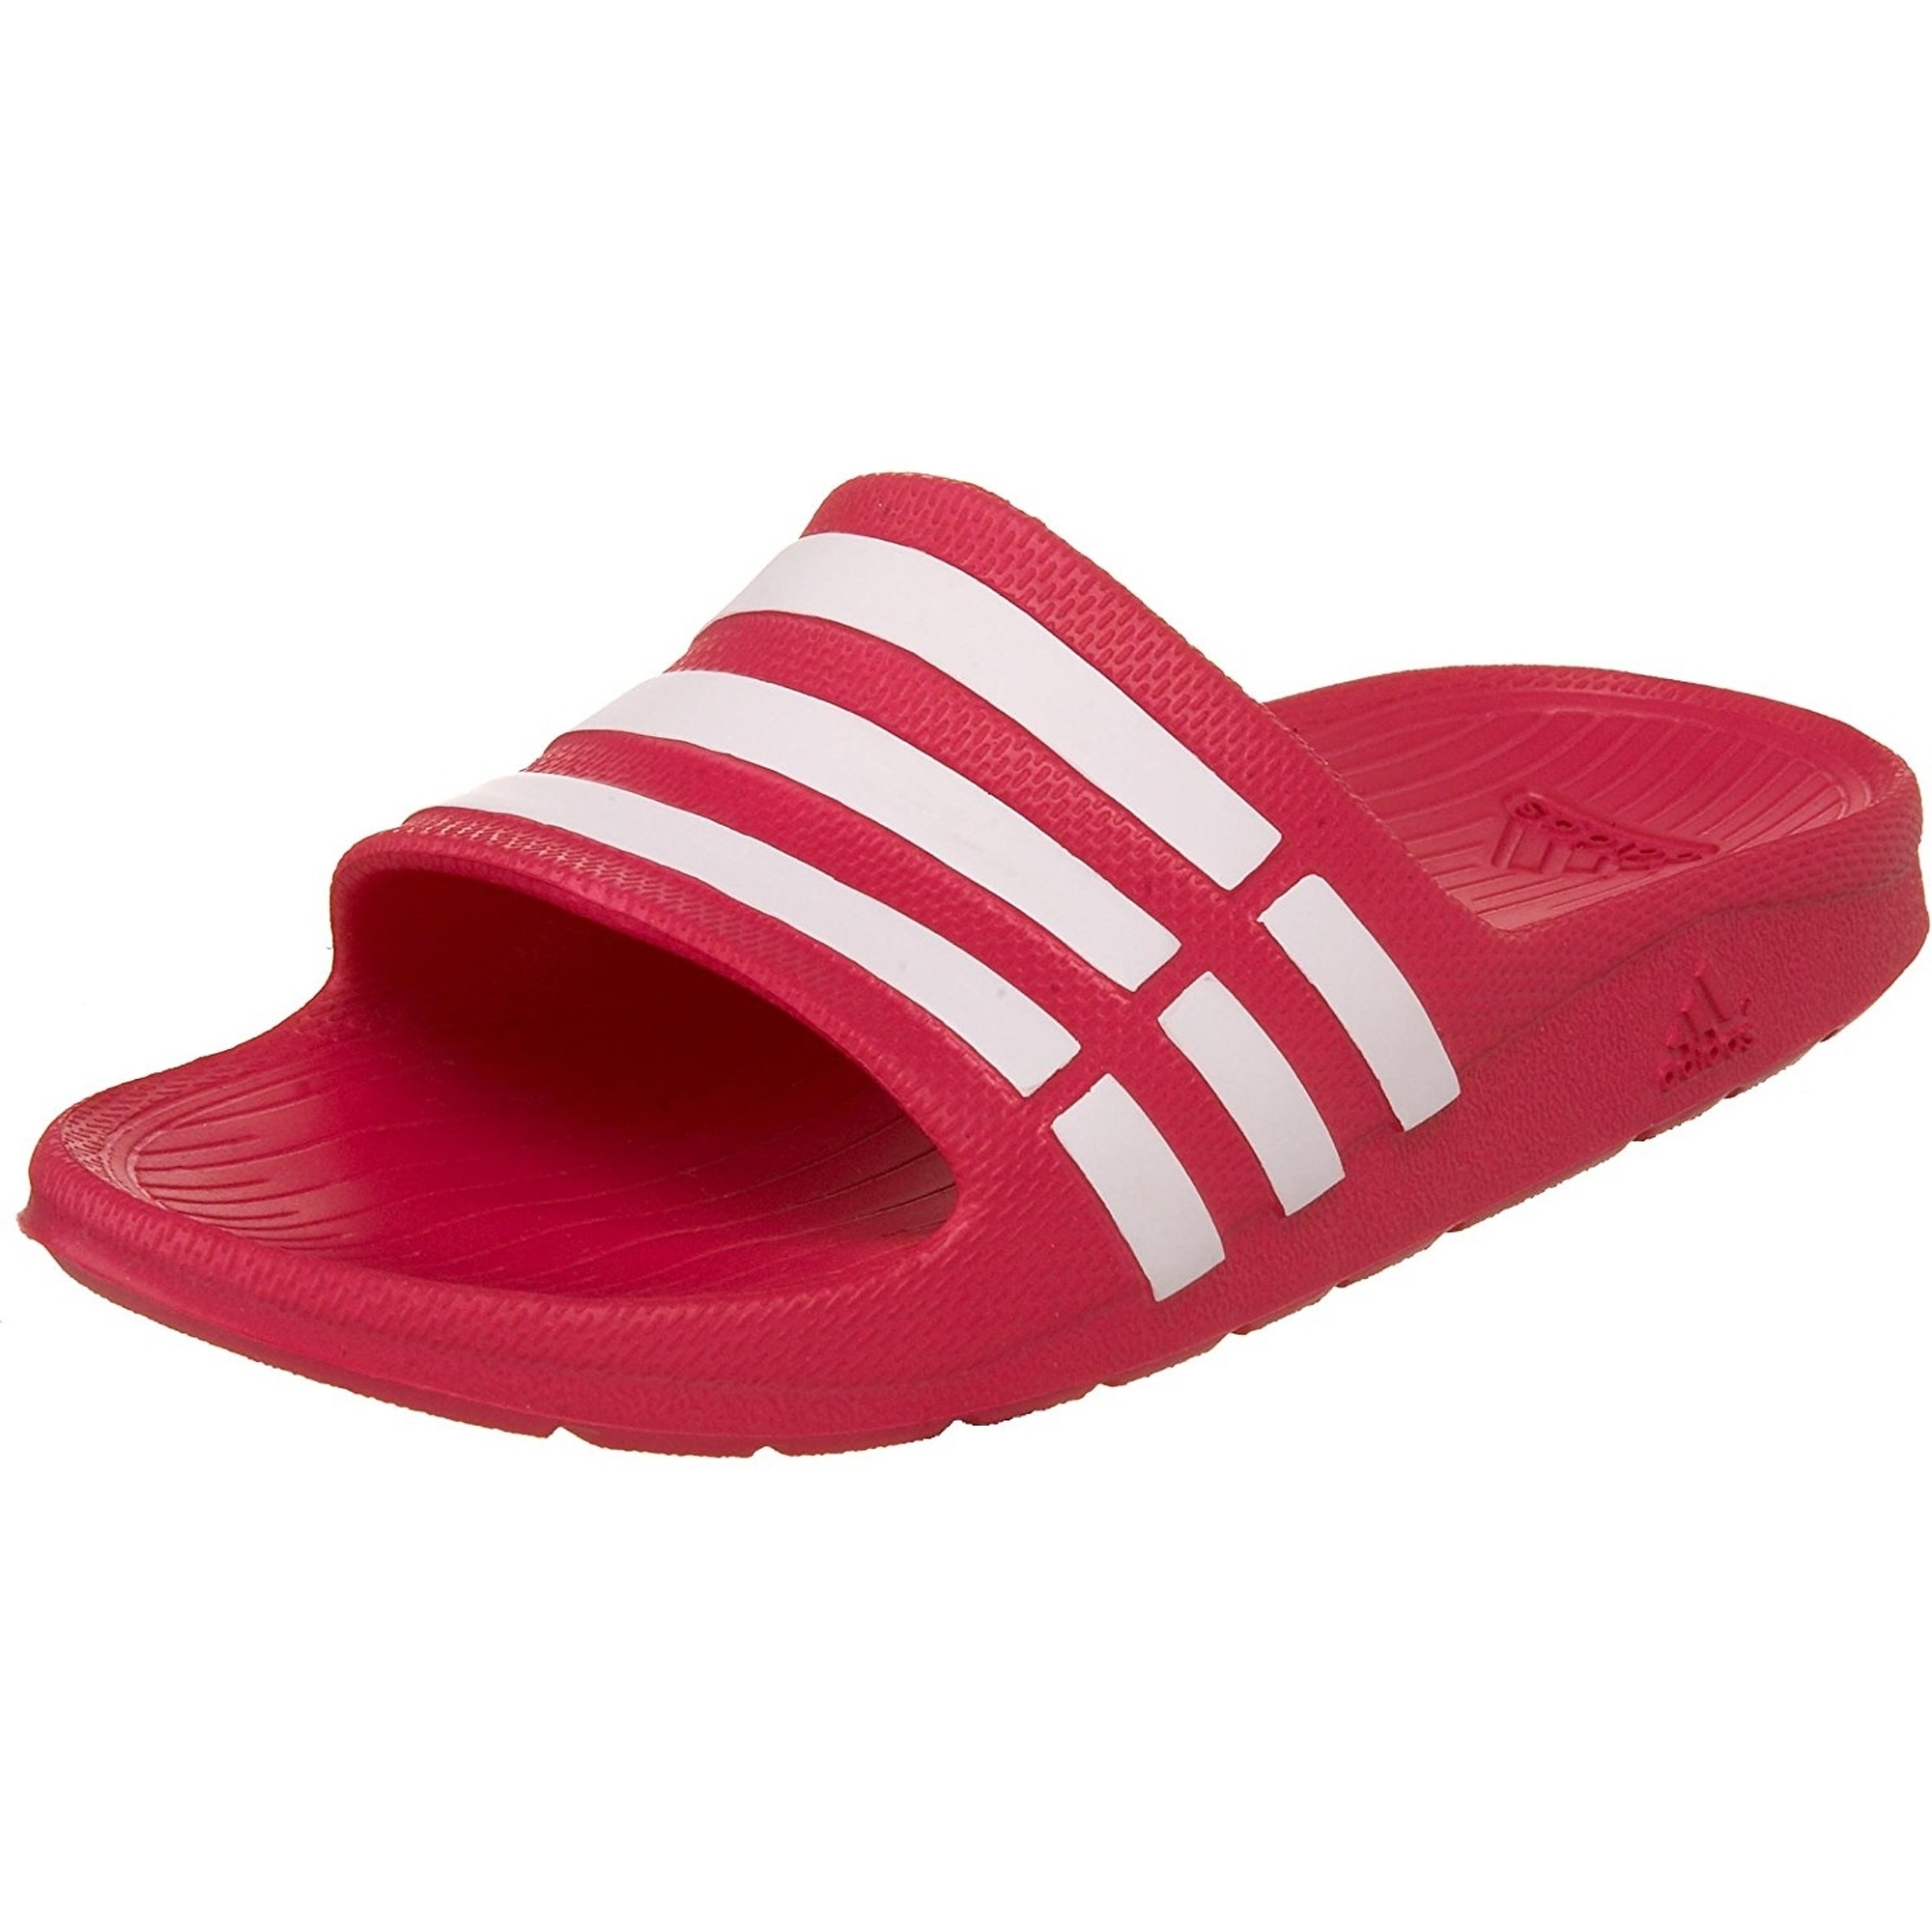 adidas Performance Kids Duramo Slide Sandal Toddler//Little Kid//Big Kid adidas Kids Performance Footwear Duramo Slide K